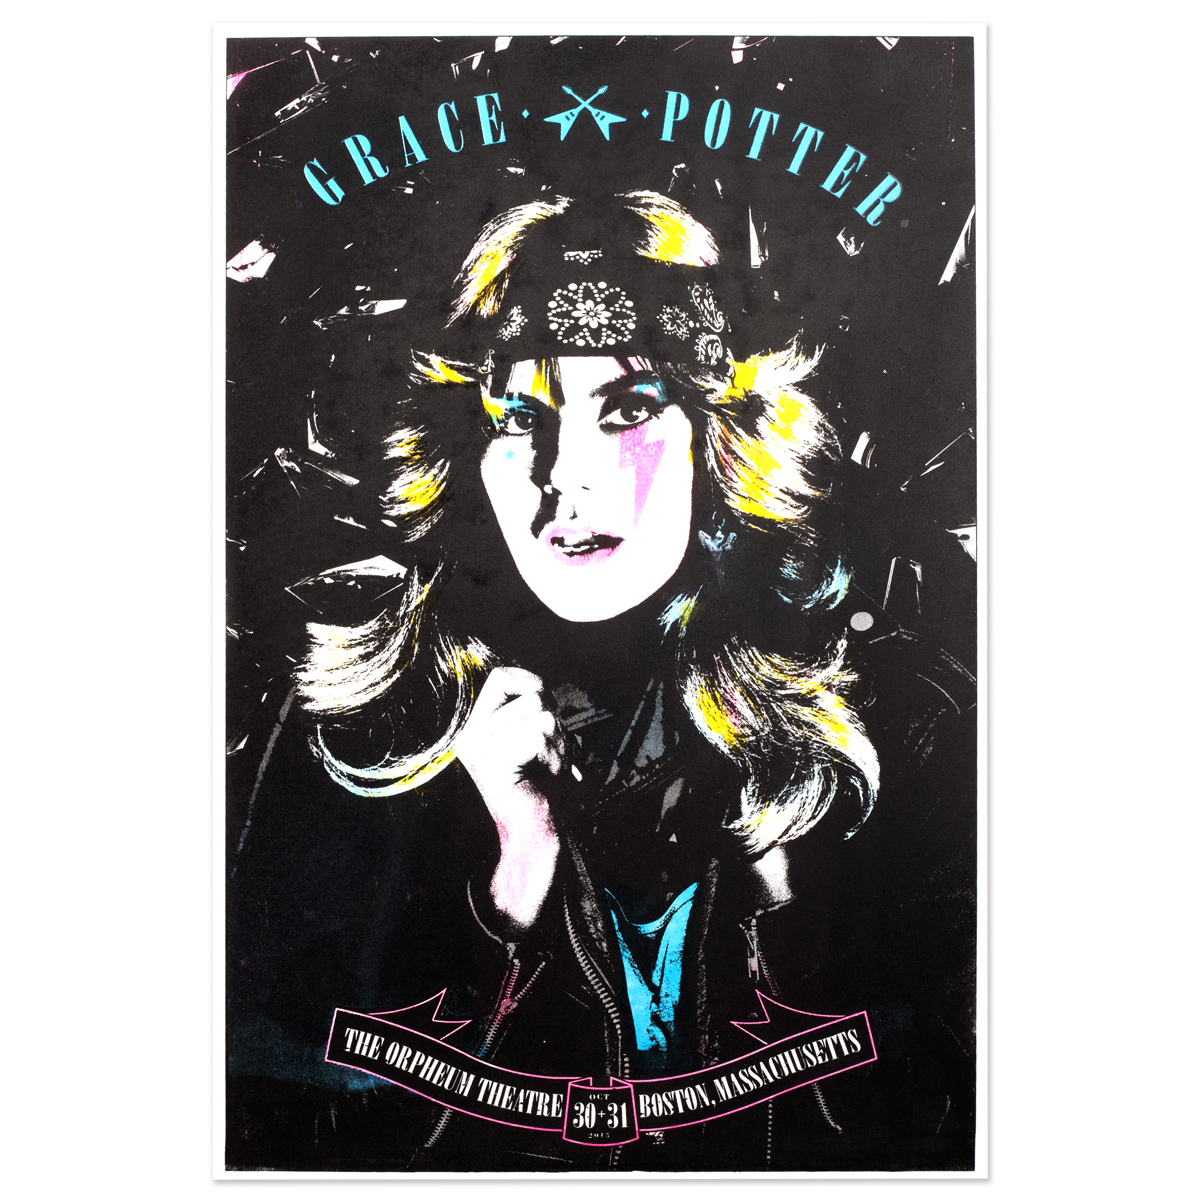 Grace Potter & The Nocturnals 10/30/15 - 10/31/15 Poster